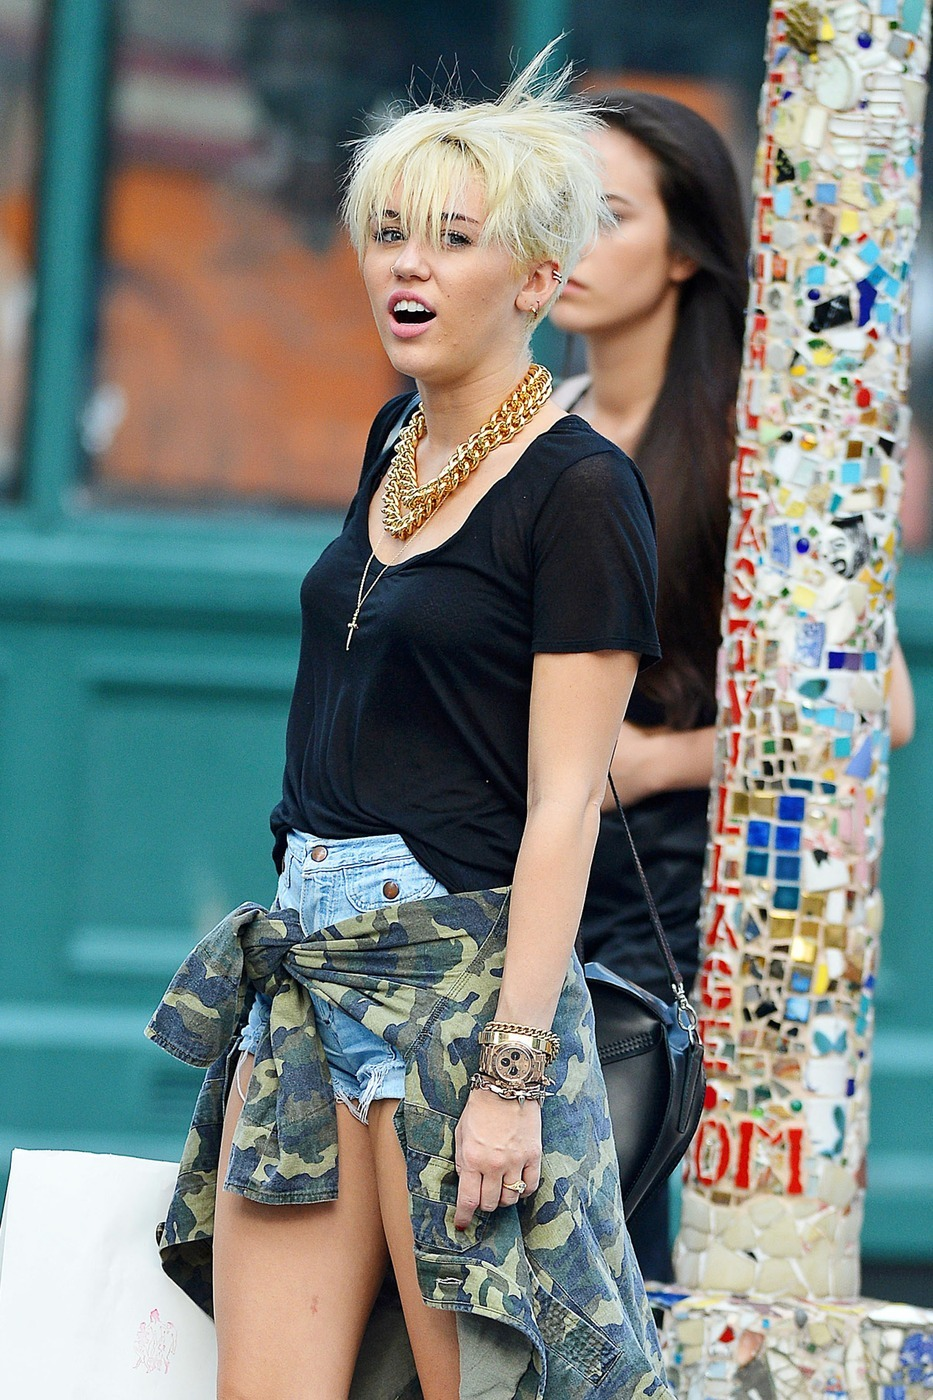 Miley Cyrus cropped hair